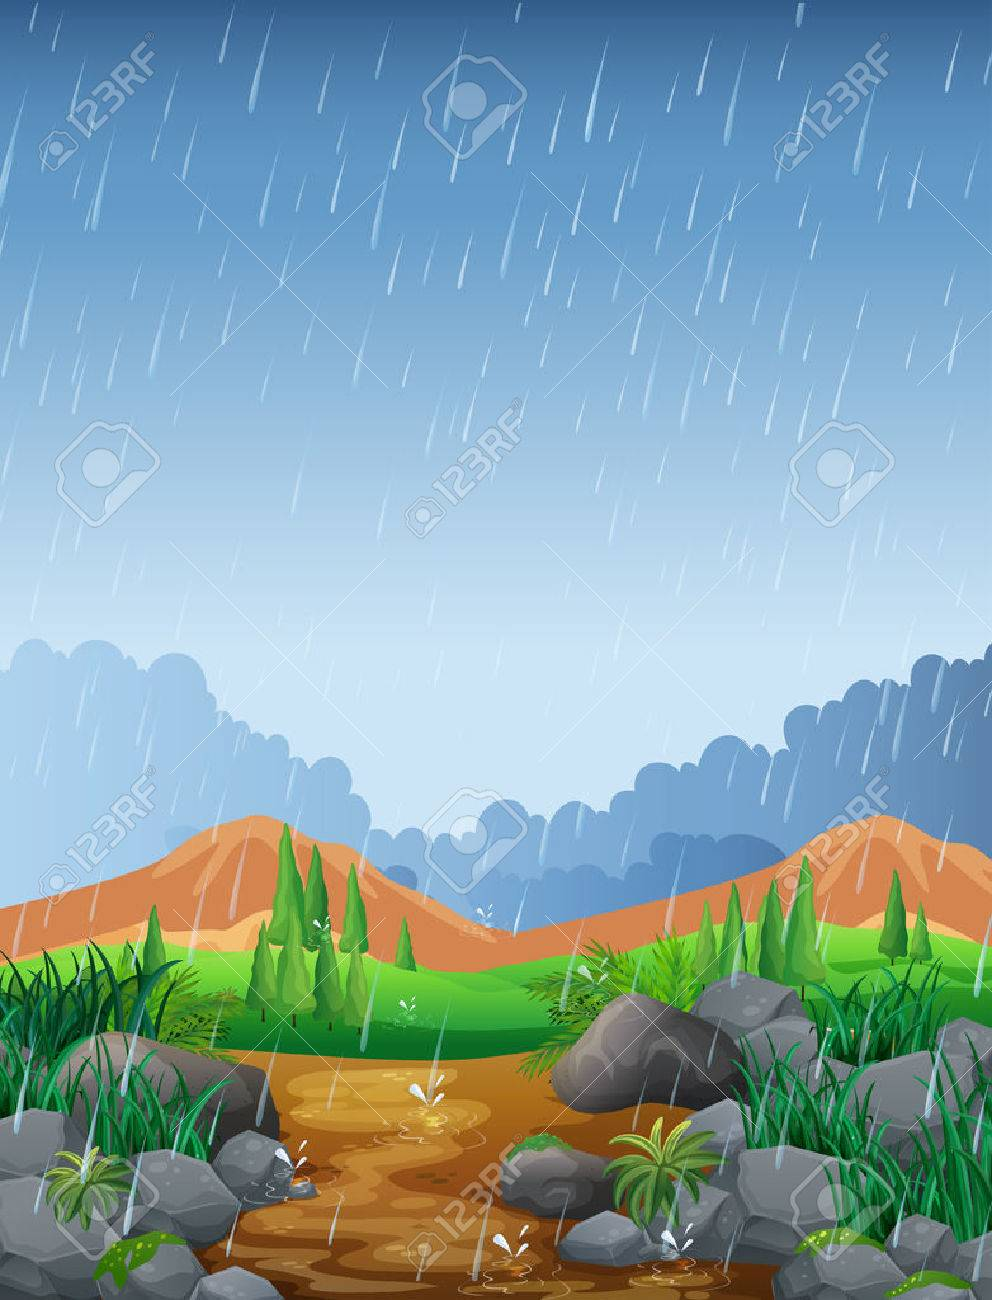 Scene with rainfall in the field illustration - 69835981